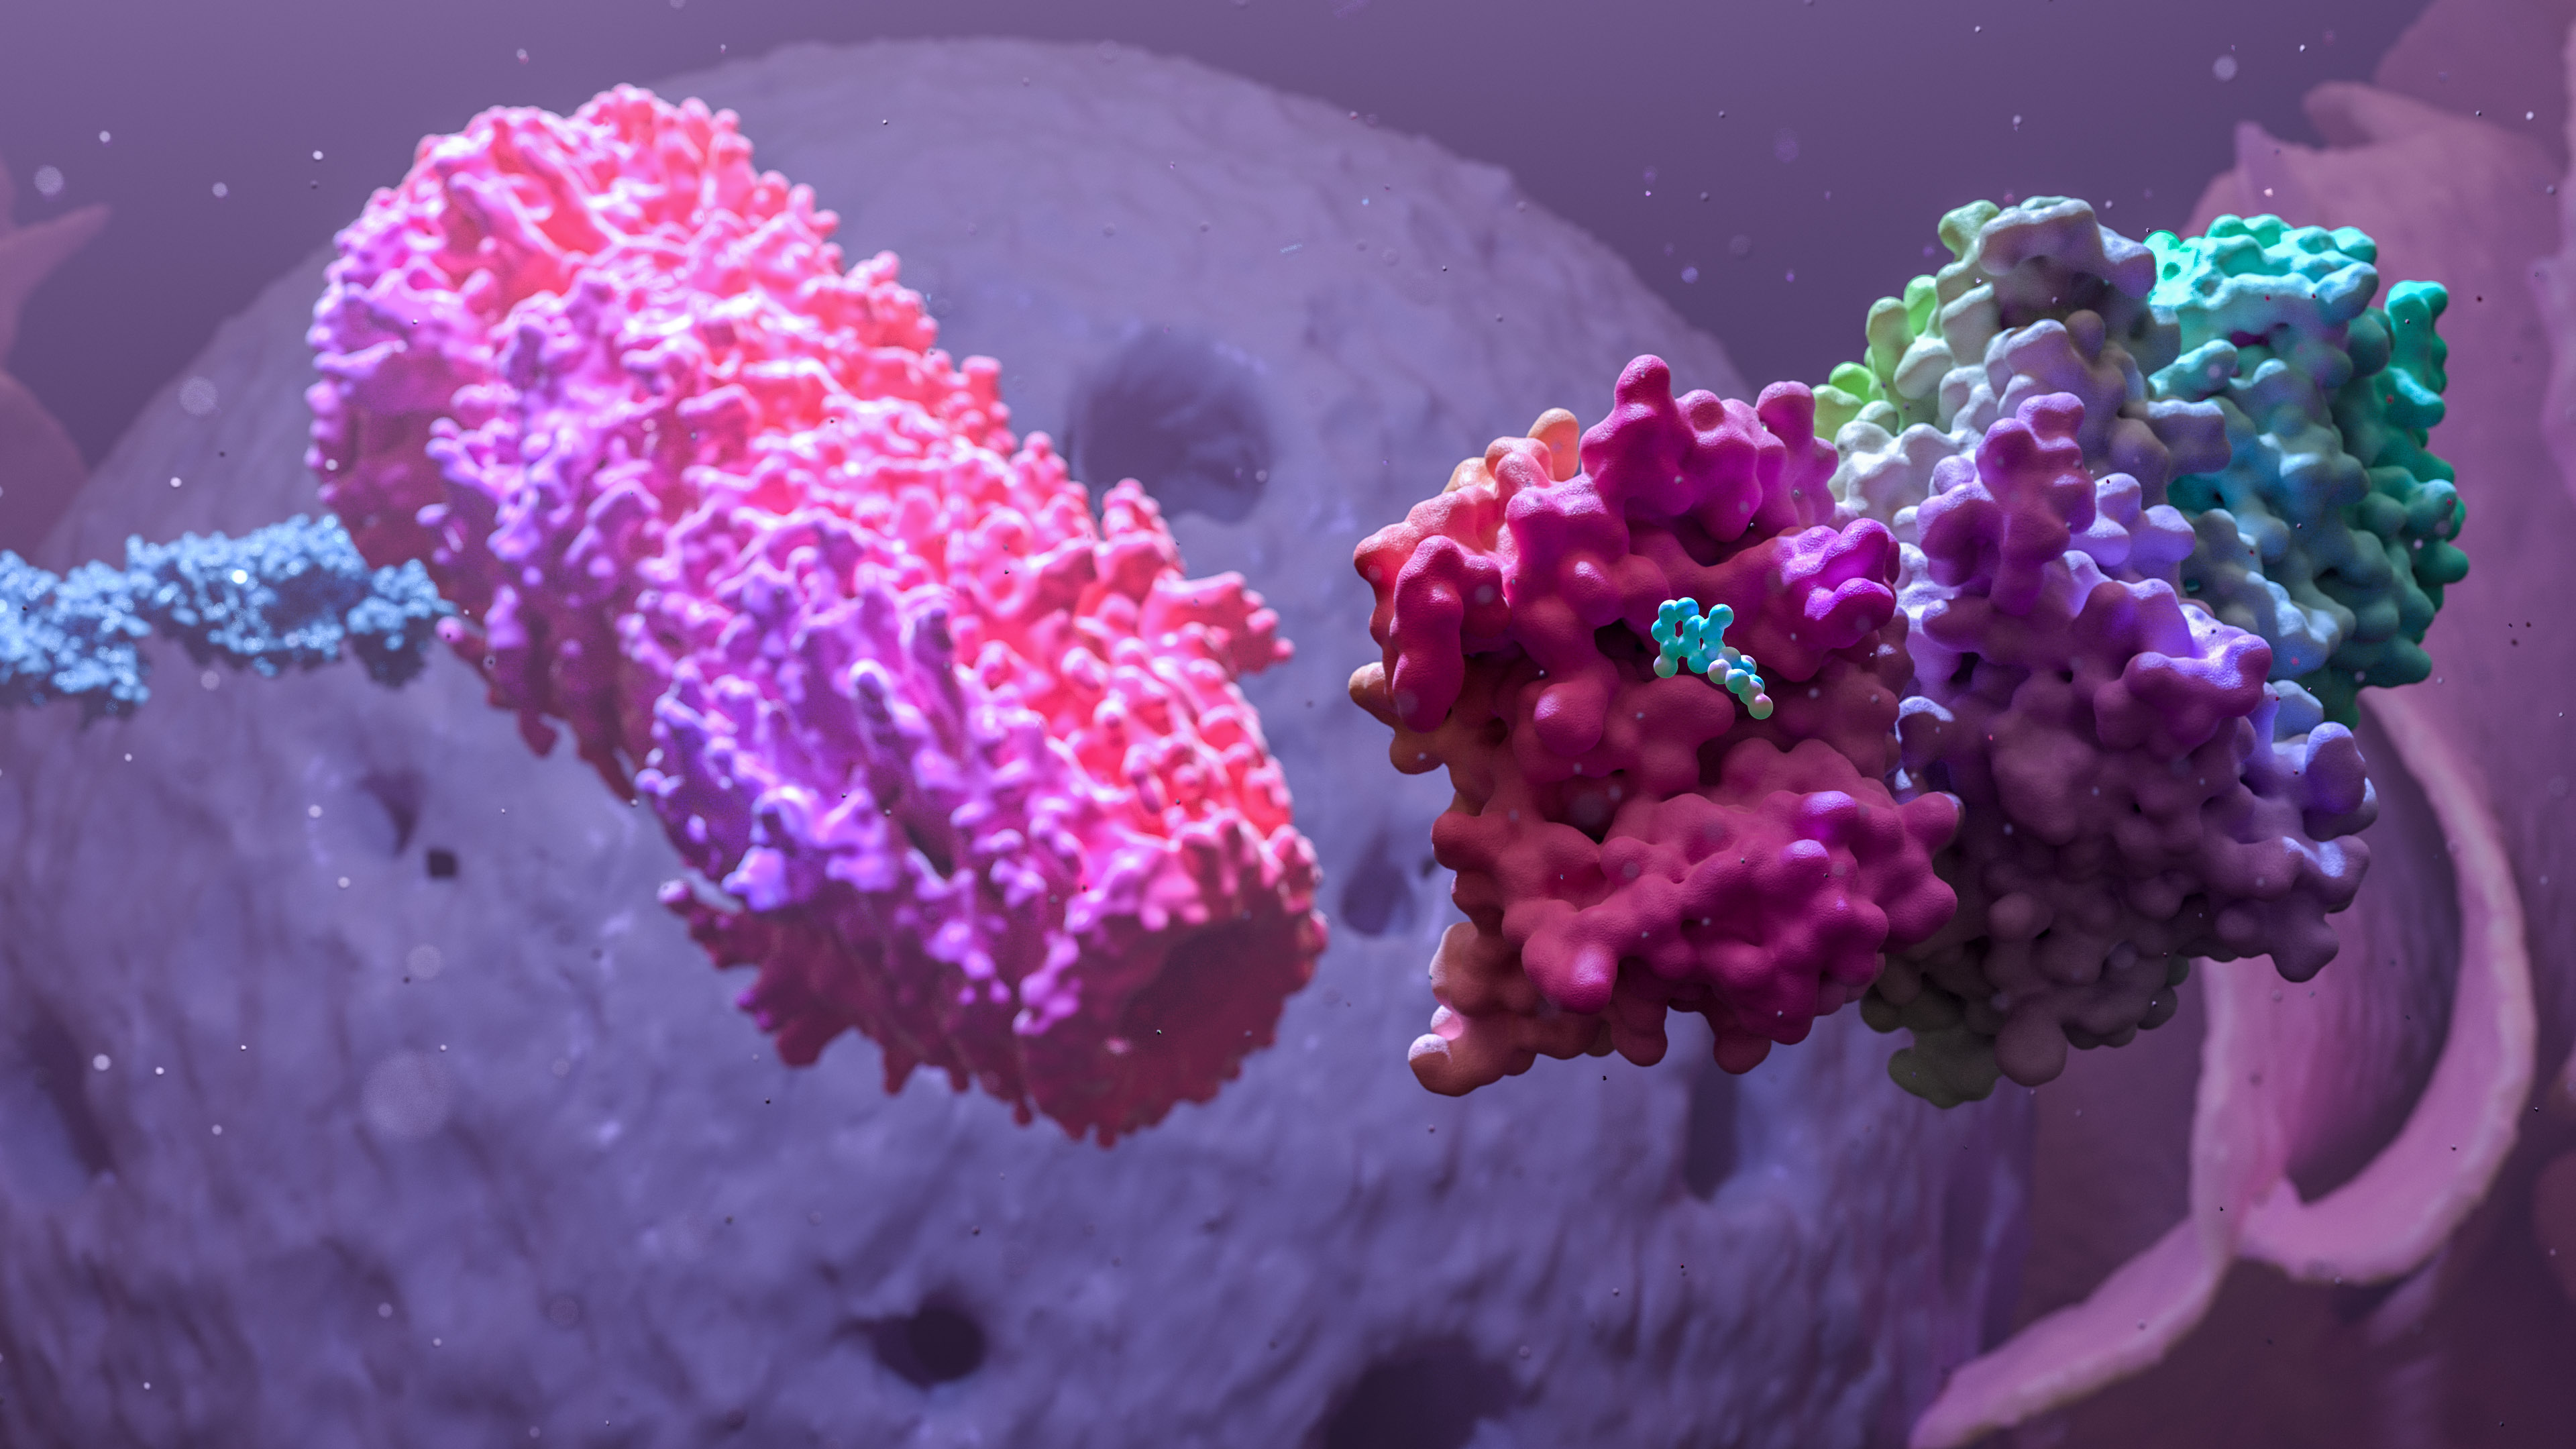 Nucleus and proteosome in the background created for a 3d medical animation